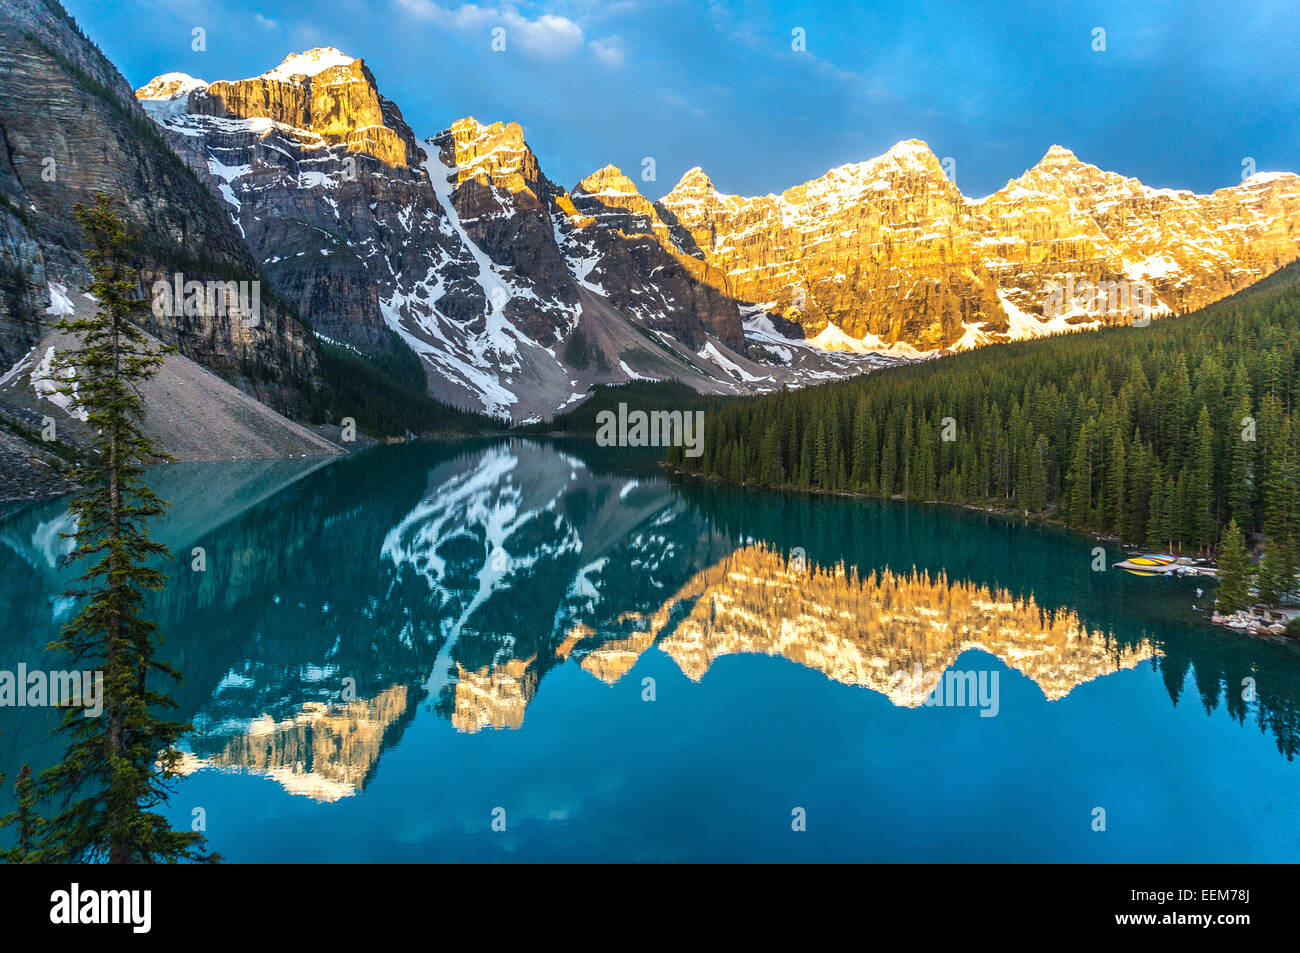 Canada, Banff National Park, Canadian Rockies, Mountains reflecting in calm lake at sunrise - Stock Image